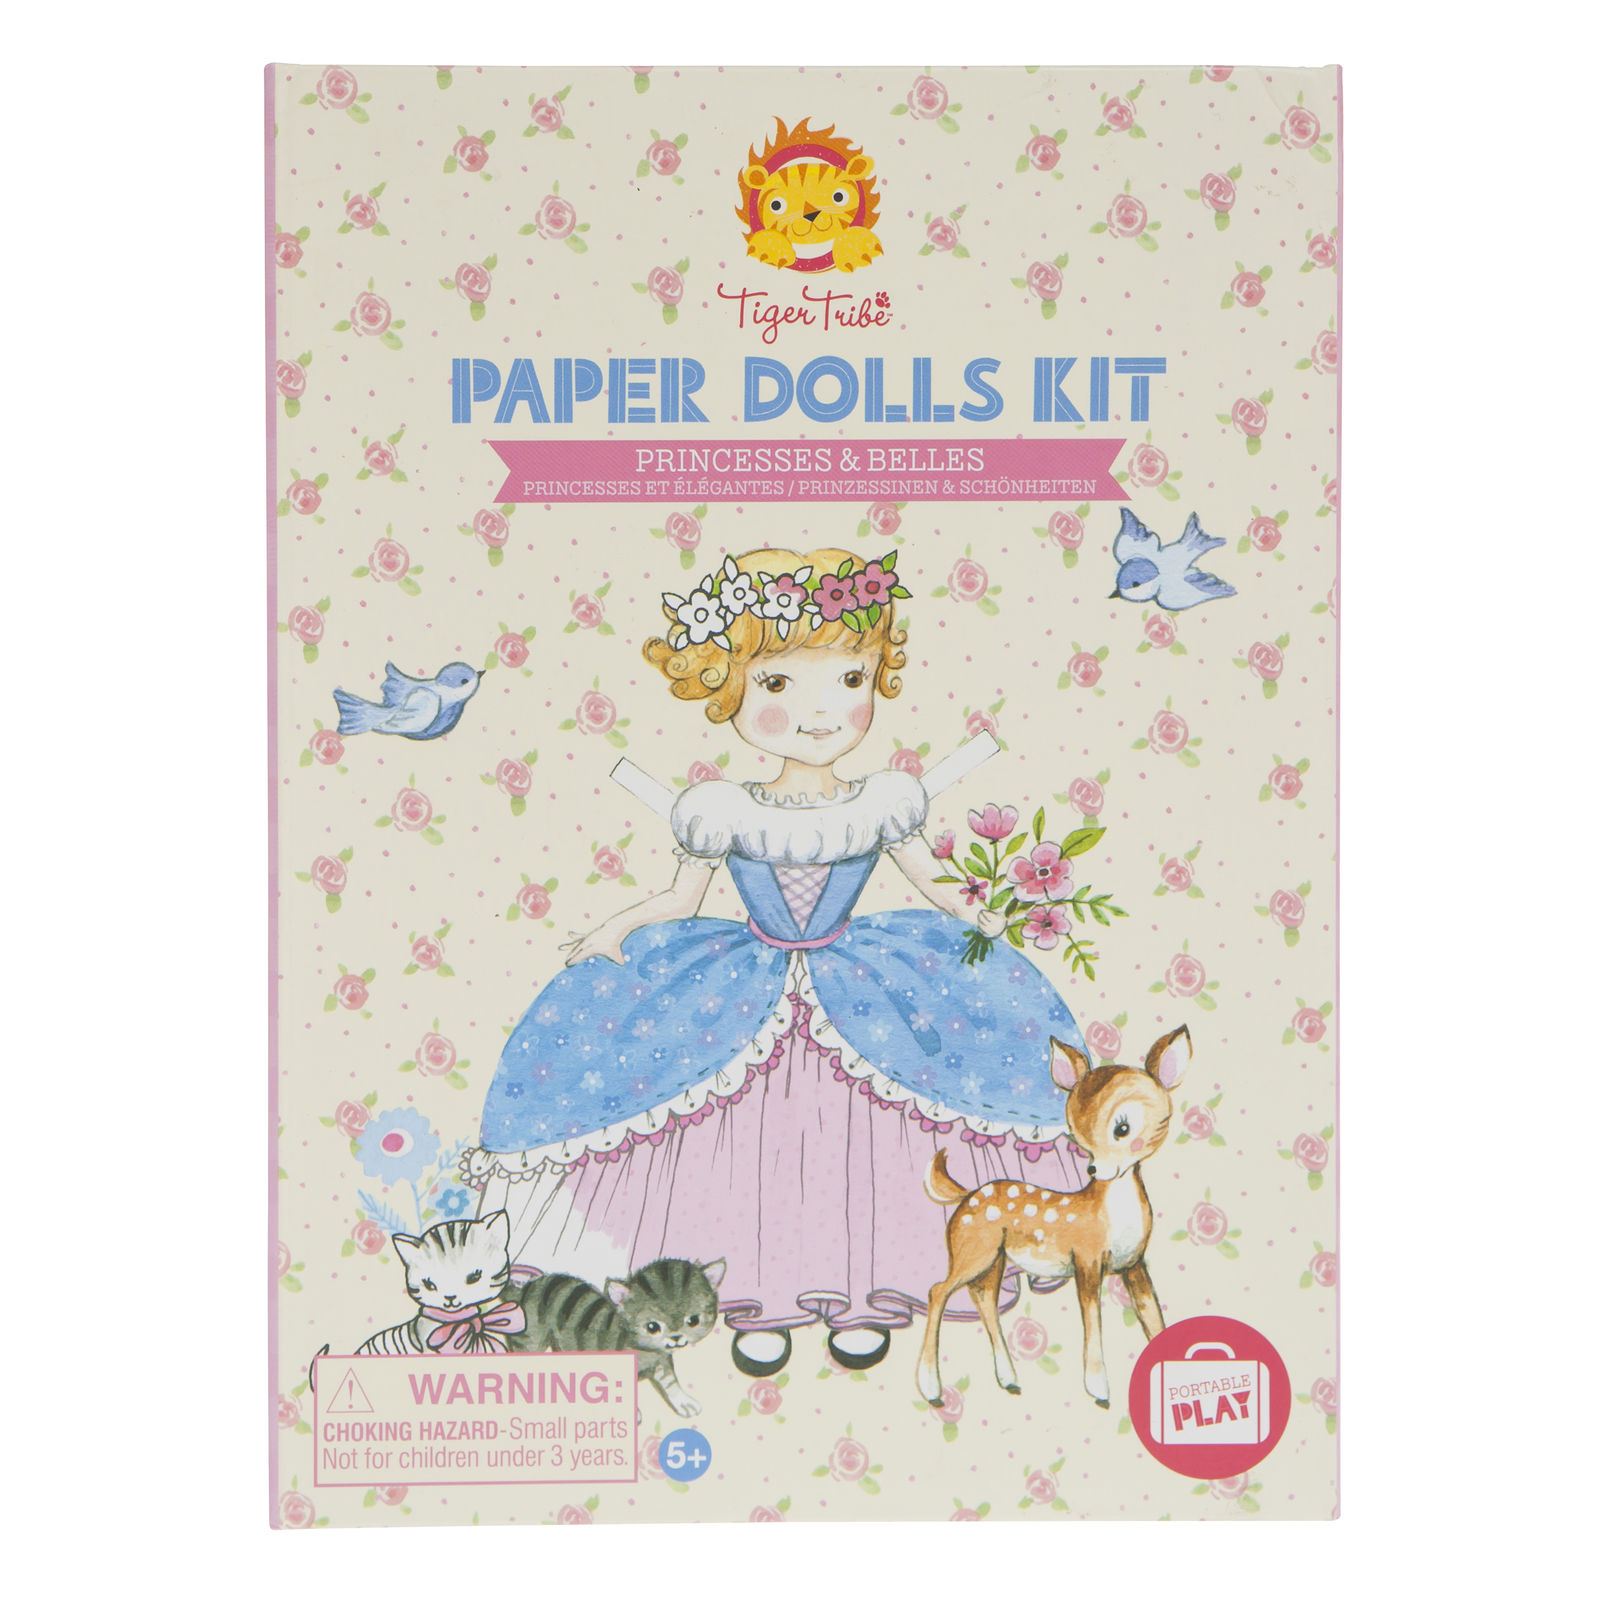 Paper Dolls Kit - Princesses & Belles by Tiger Tribe 5+